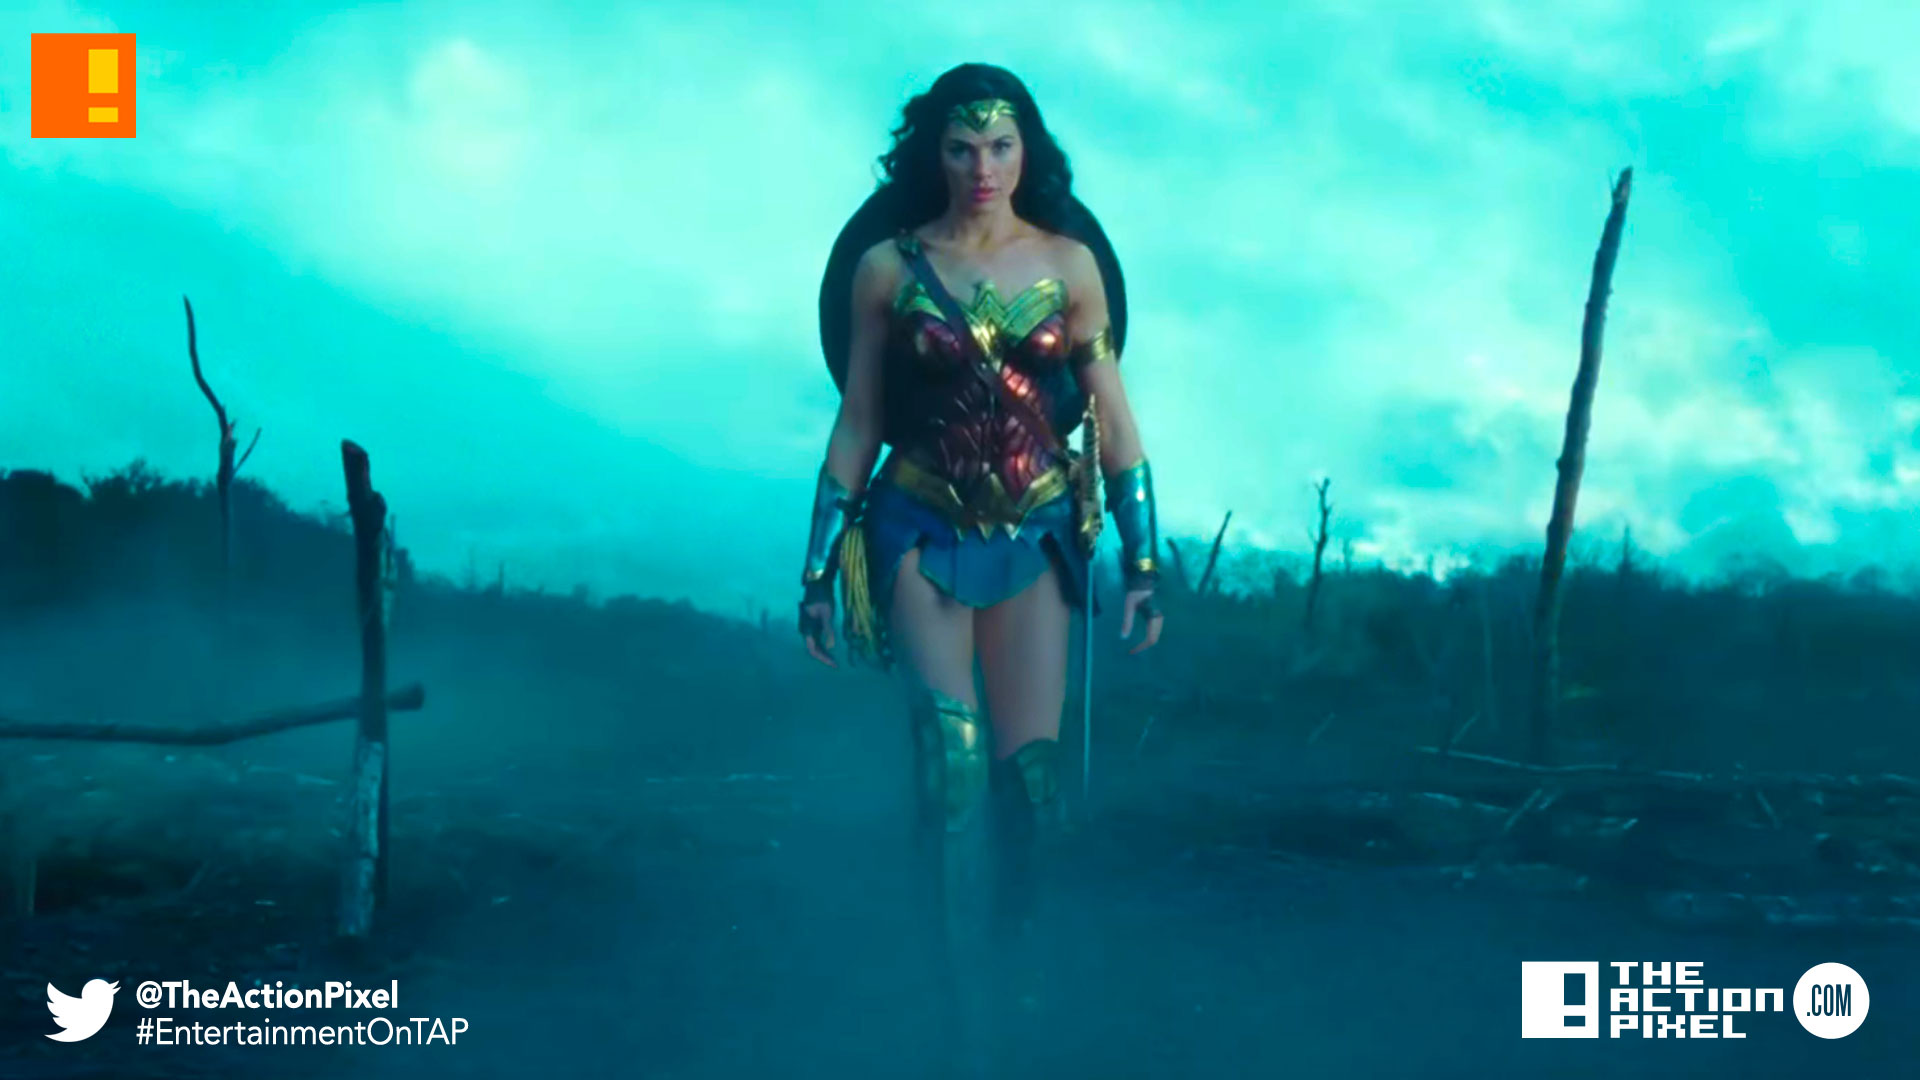 wonder woman,the action pixel, entertainment on tap, wb pictures, warner bros. entertainment , the action pixel, gal gadot, ww,bracelets, origin, trailer